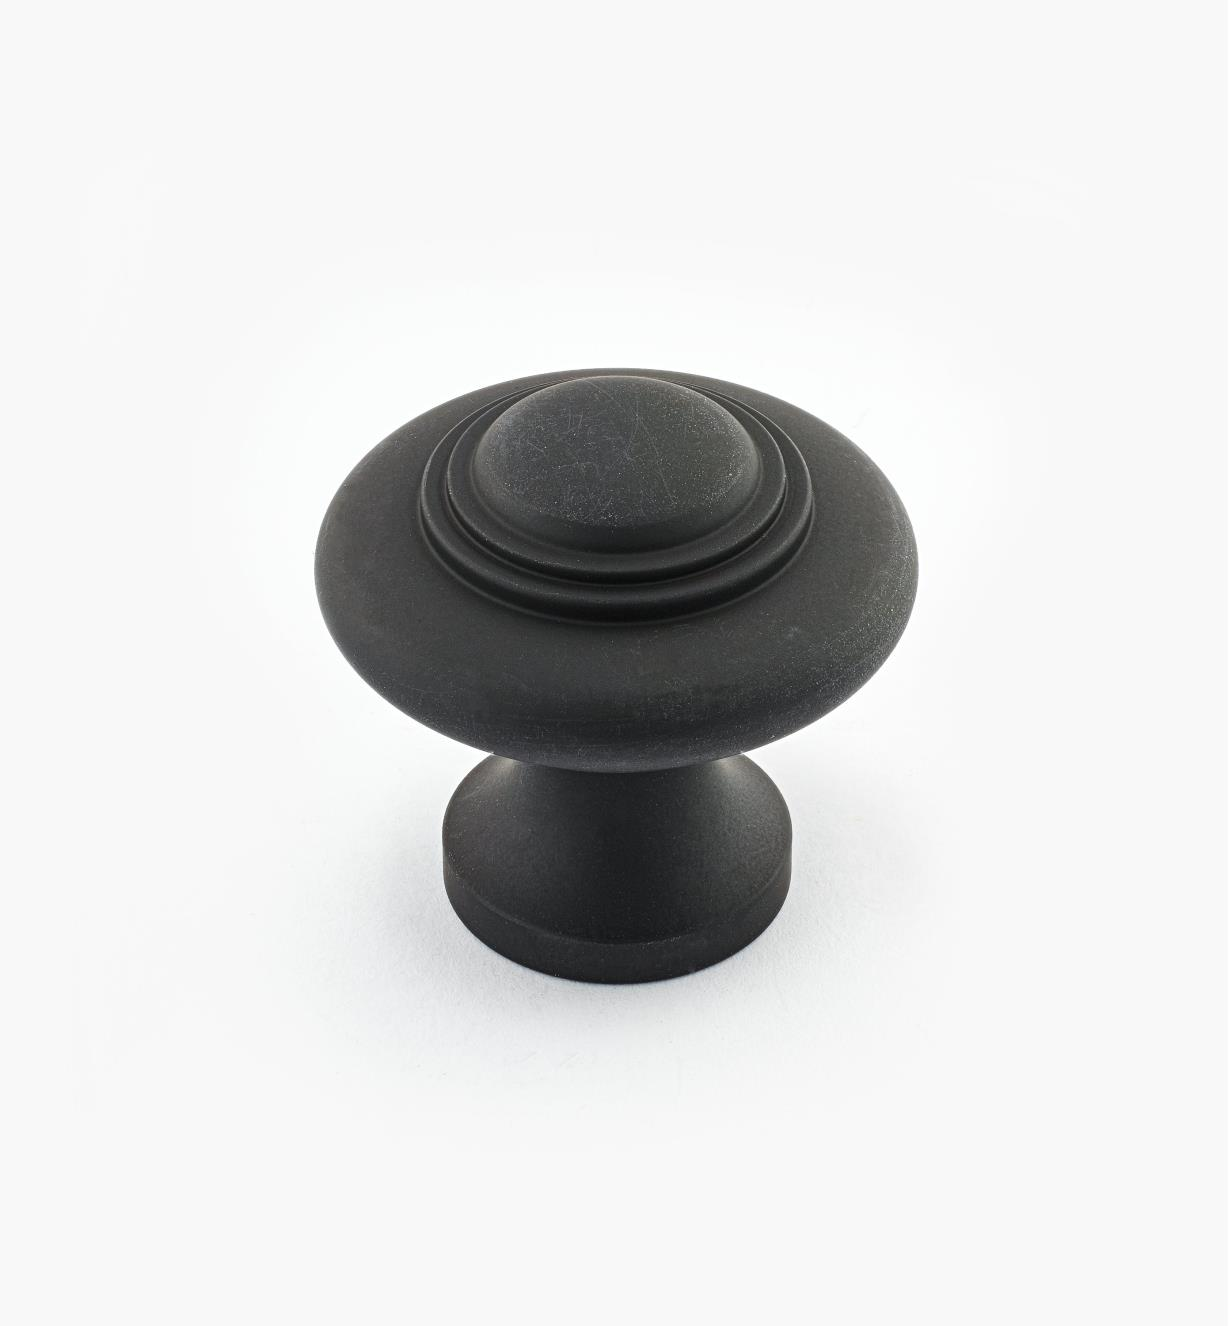 "02W2623 - Oil-Rubbed Bronze Suite - 1 5/16"" x 1 1/4"" Cast Brass Ring Knob"